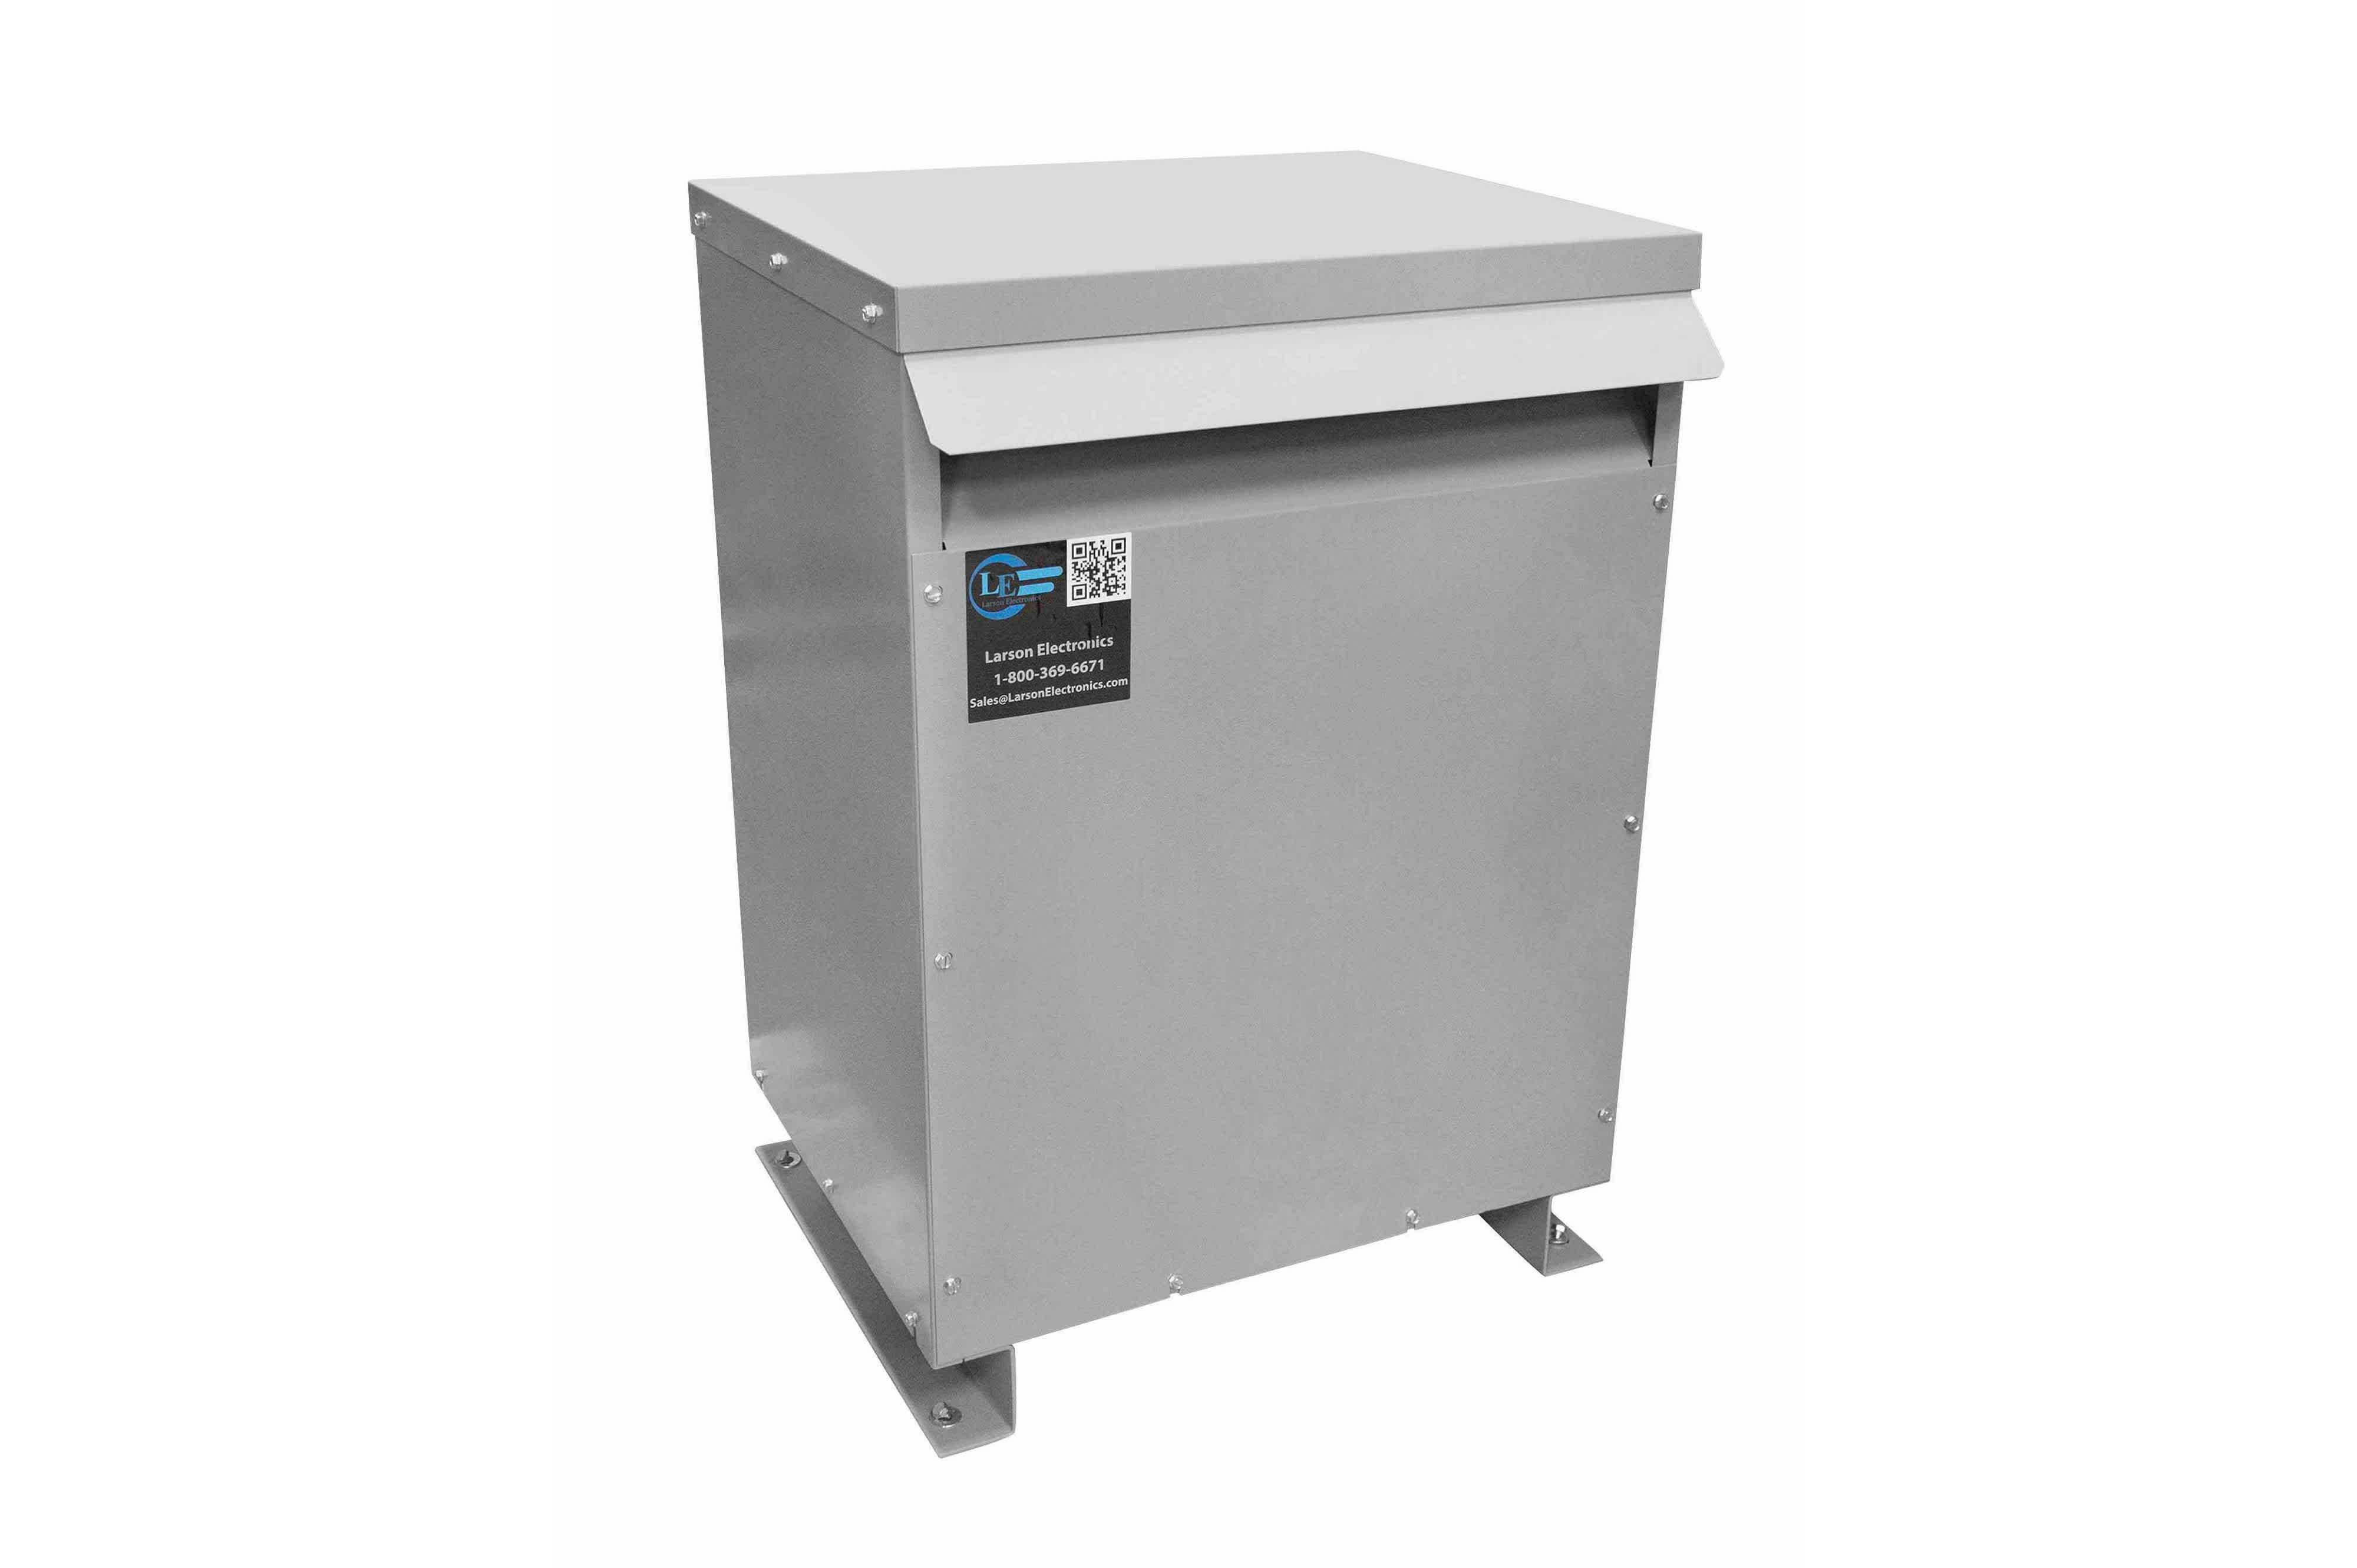 600 kVA 3PH Isolation Transformer, 220V Delta Primary, 208V Delta Secondary, N3R, Ventilated, 60 Hz